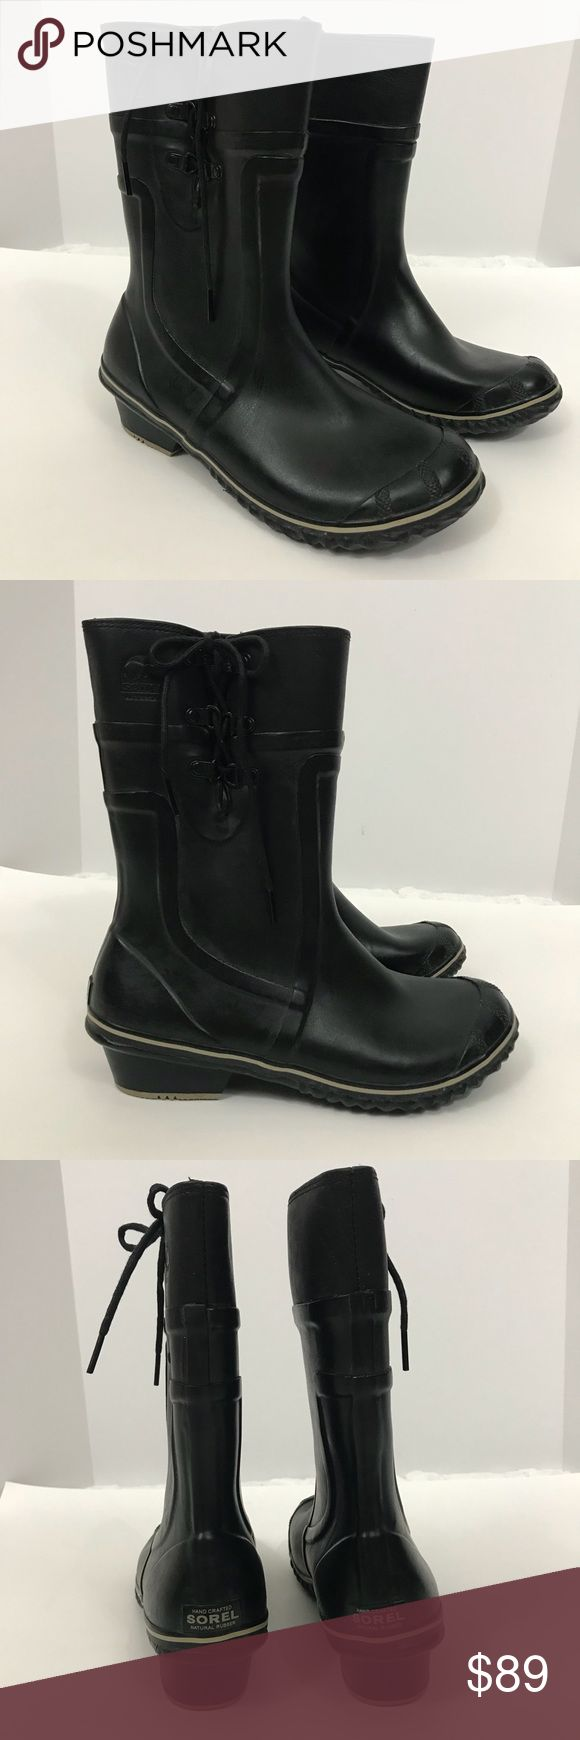 Sorel rain boots conquest Carly glow black 9.5 Beautiful rain boots in perfect condition. Worn only a few times. Non smoking home. No stains and no tears . Sorel Shoes Winter & Rain Boots